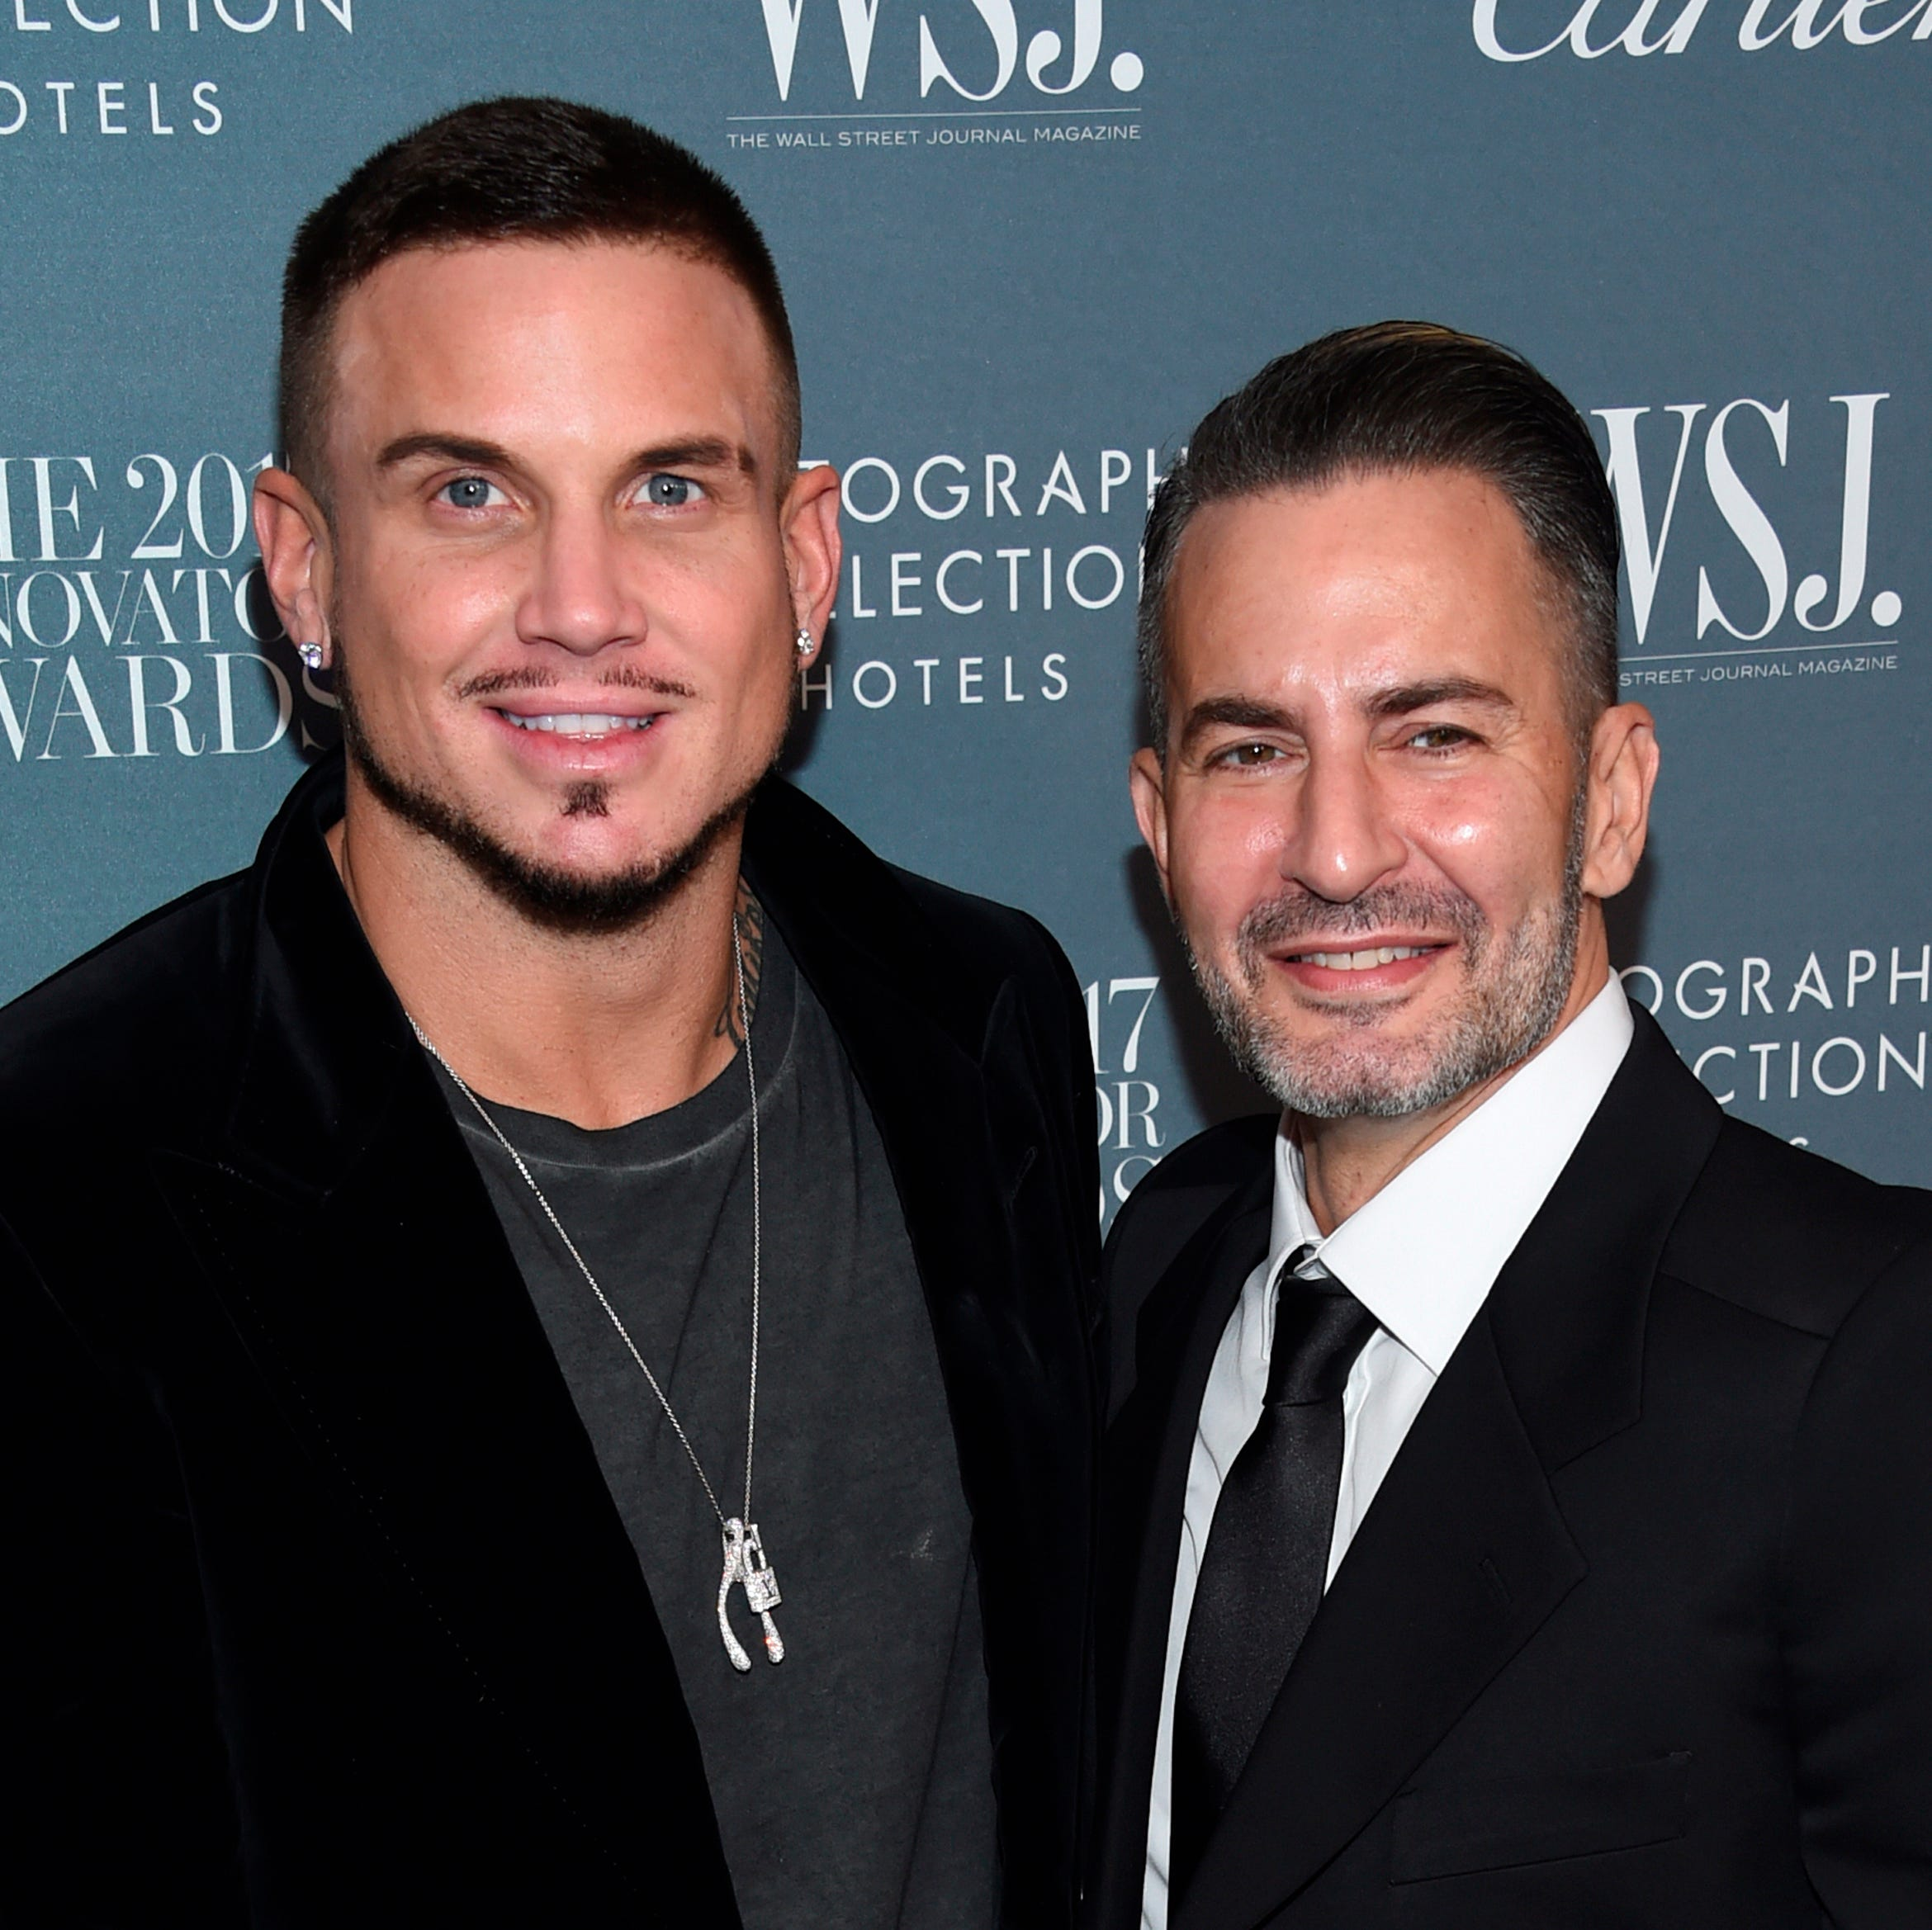 Marc Jacobs, right, and Char Defrancesco attend the WSJ. Magazine Innovator Awards at the Museum of Modern Art in New York.